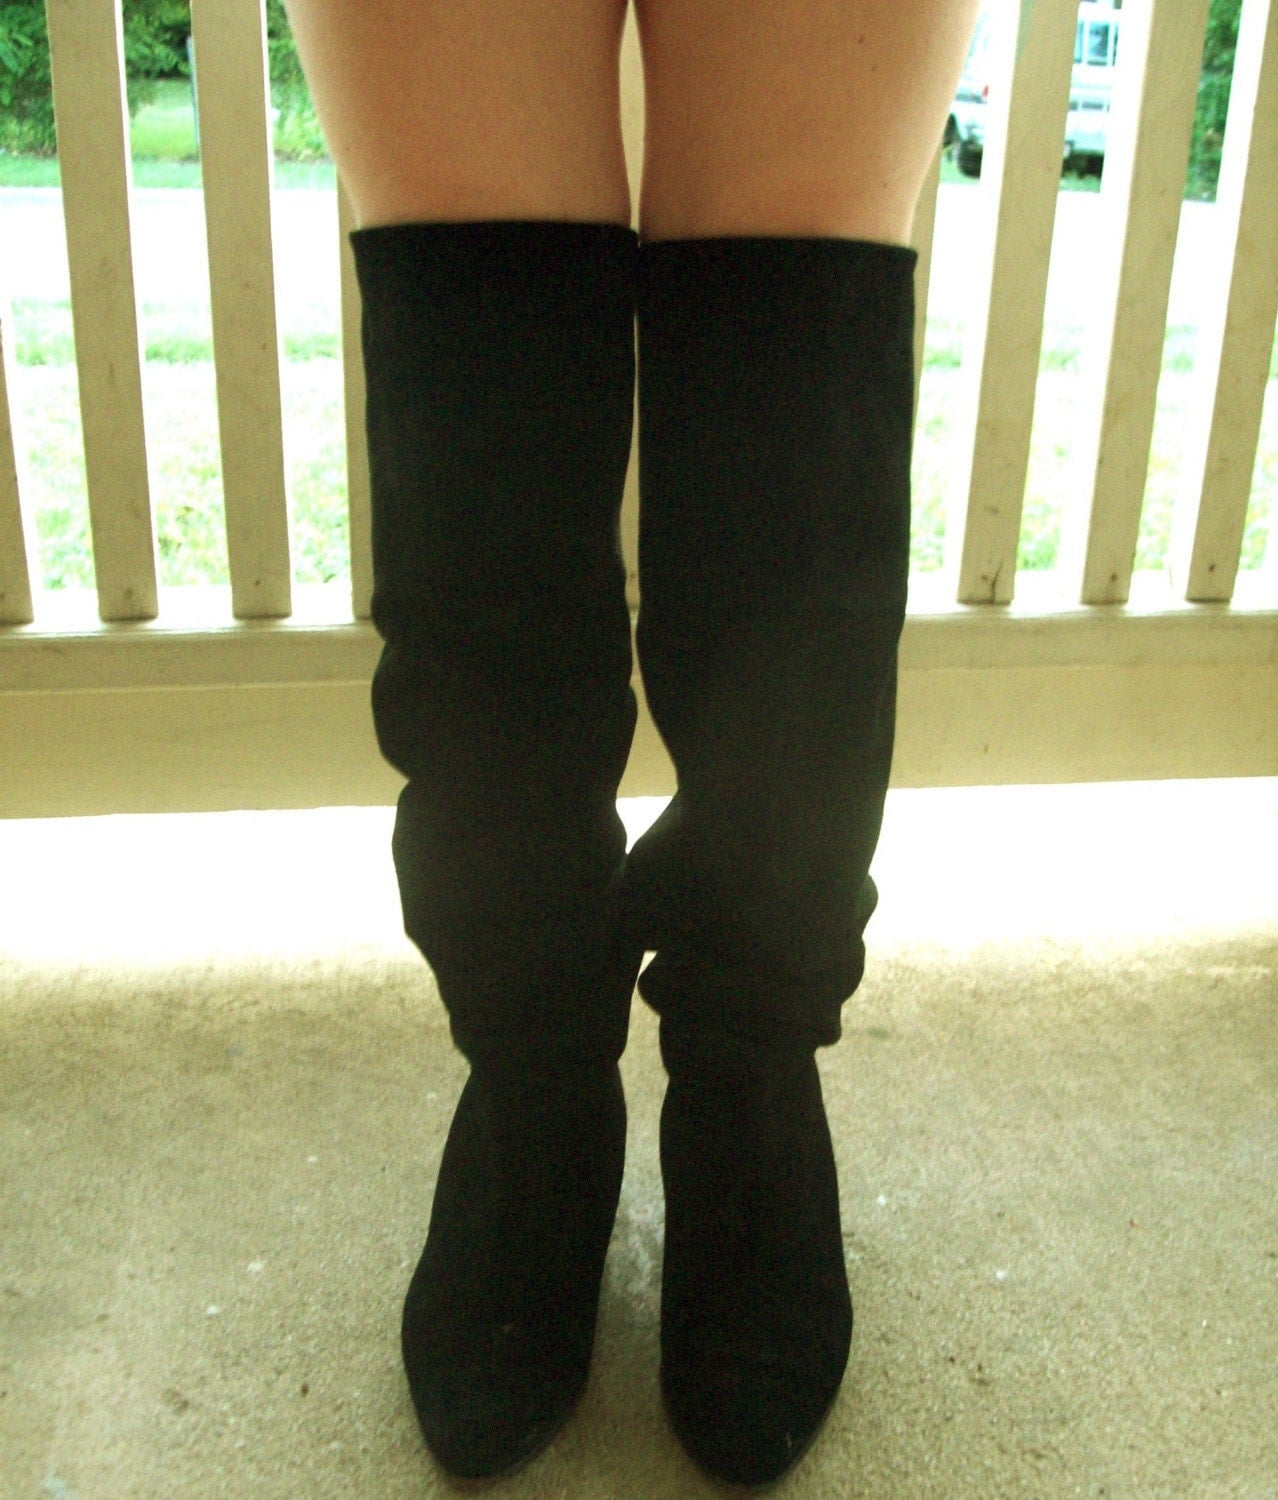 Vintage tall black leather thigh high OTK boots - 11 (10/13/2009)